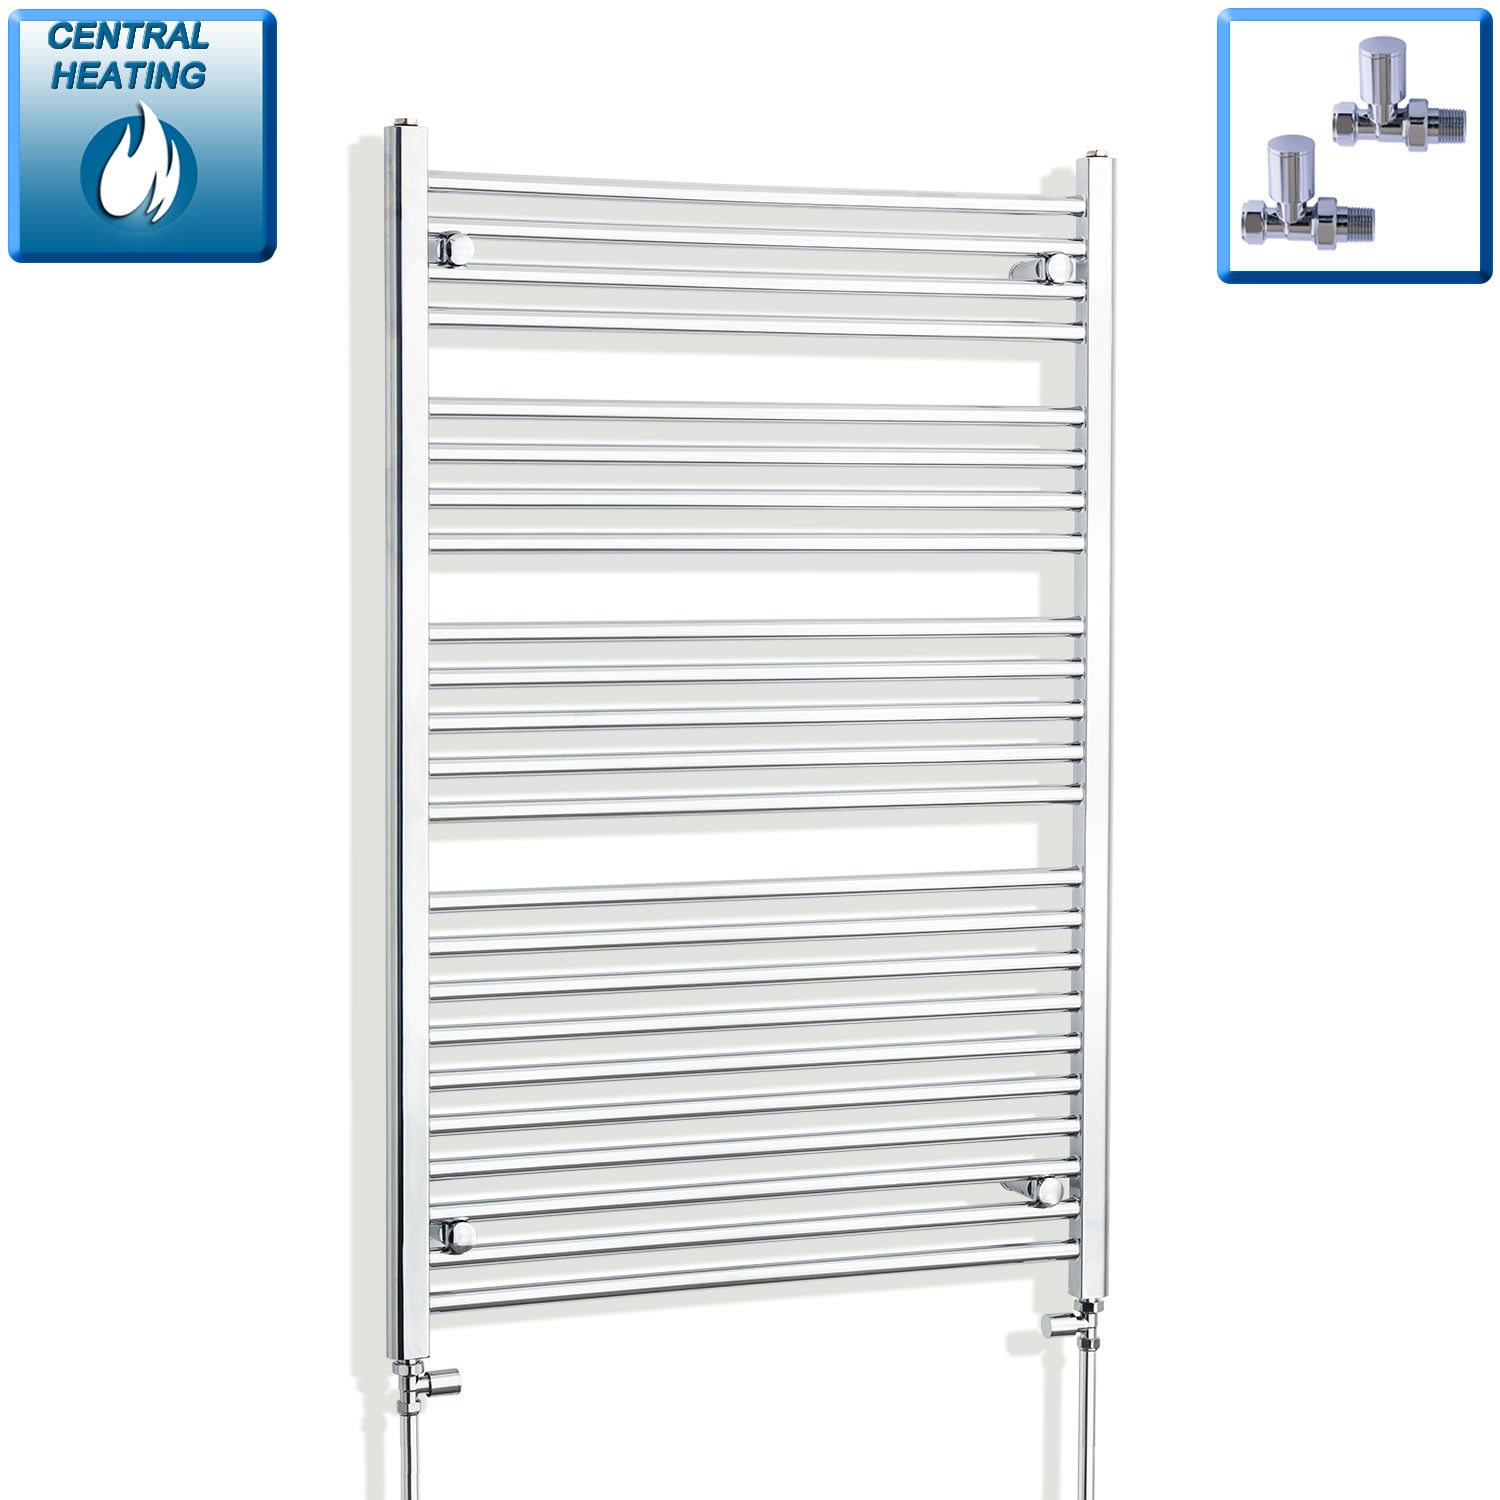 800mm Wide 1200mm High Chrome Towel Rail Radiator With Straight Valve